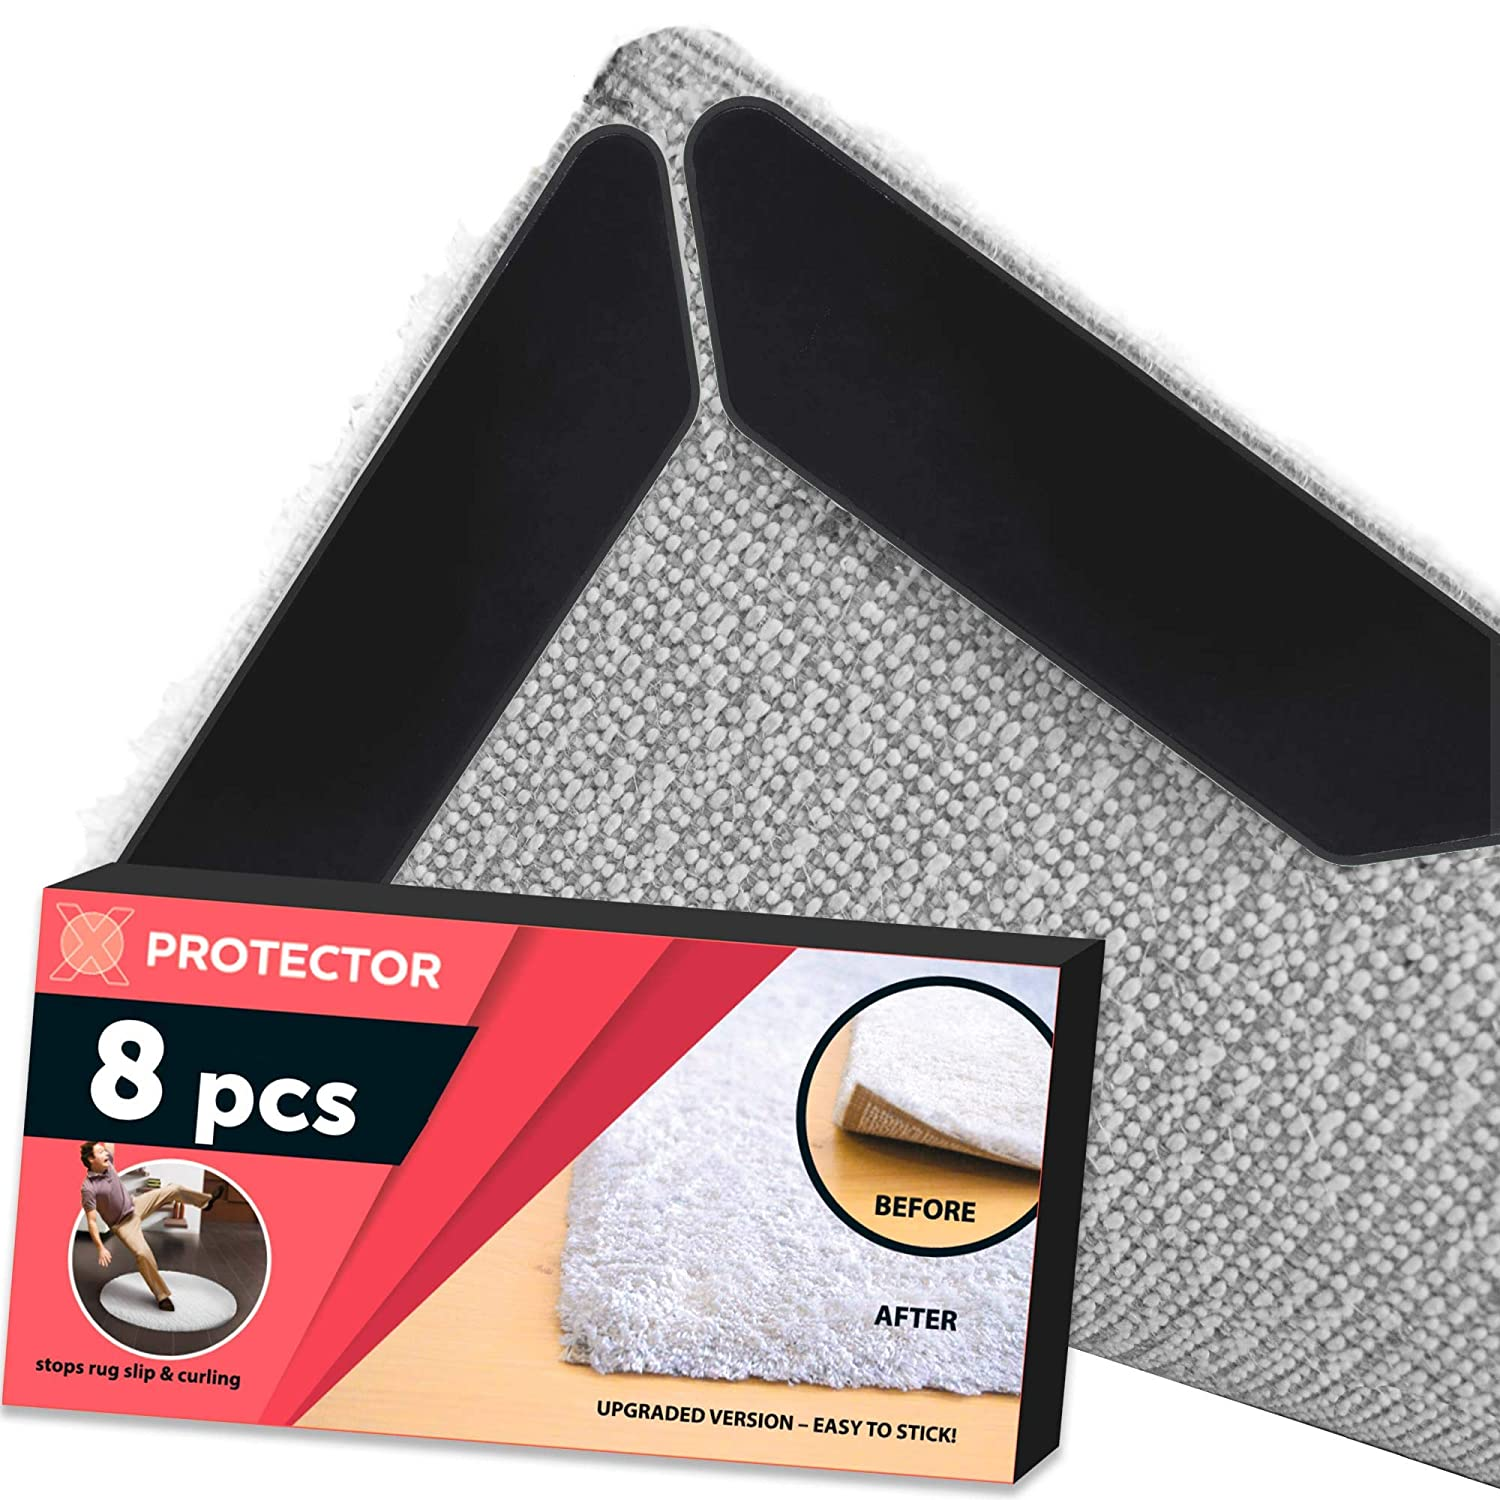 X-Protector Rug Gripper 8 Pack – Best Rug Grippers - Rug Tape Pad - Anti Curling Carpet Pad. Keeps Your Rug in Place & Makes Corners Flat. Premium Carpet Gripper – Anti Slip Rug Pad for Rug Non Slip! Clever & Easy